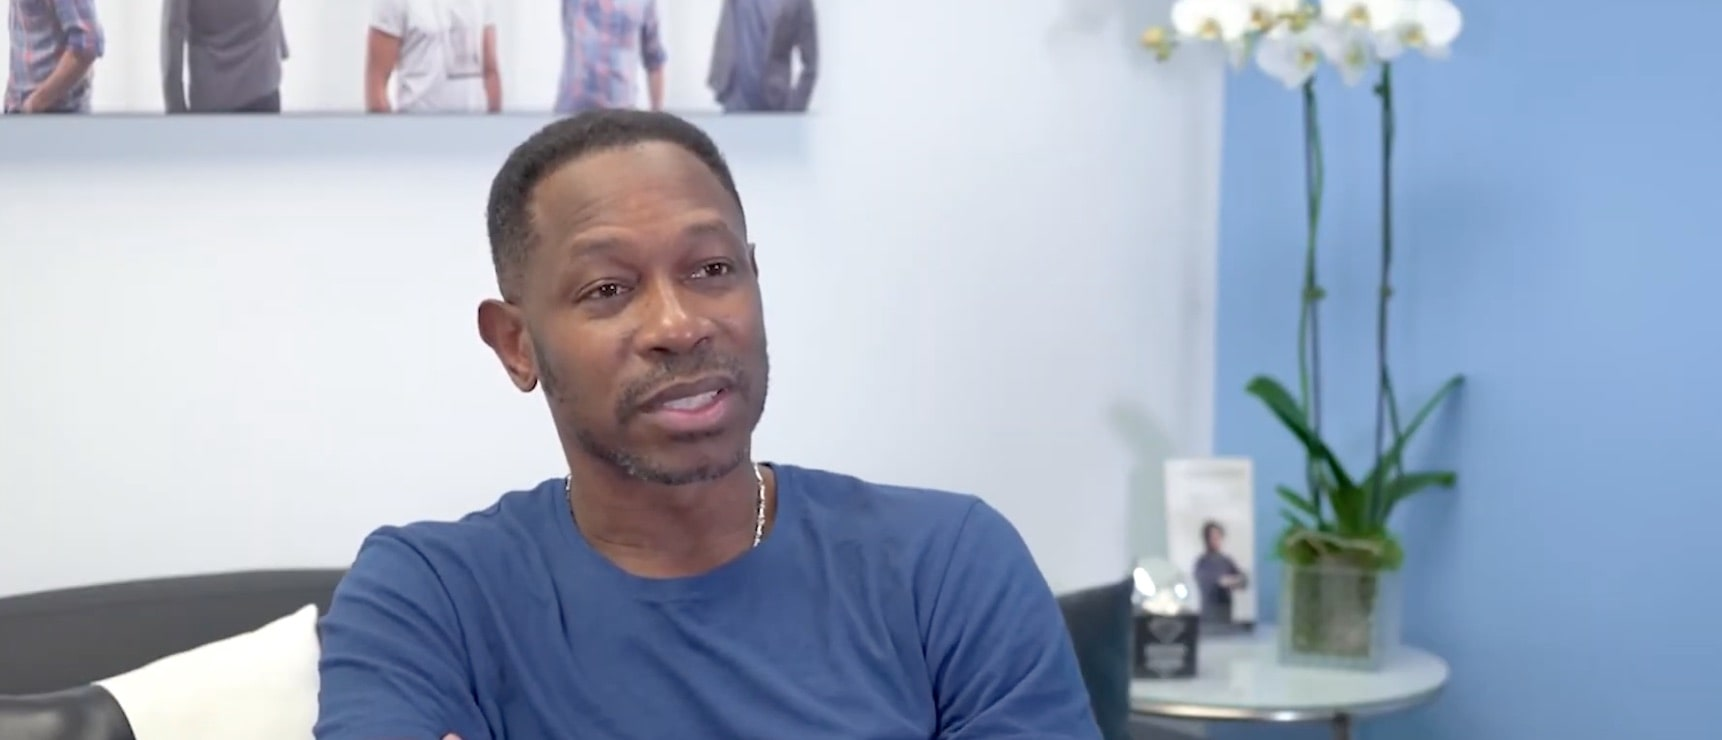 View the hair restoration results of MLB player Kenny Lofton